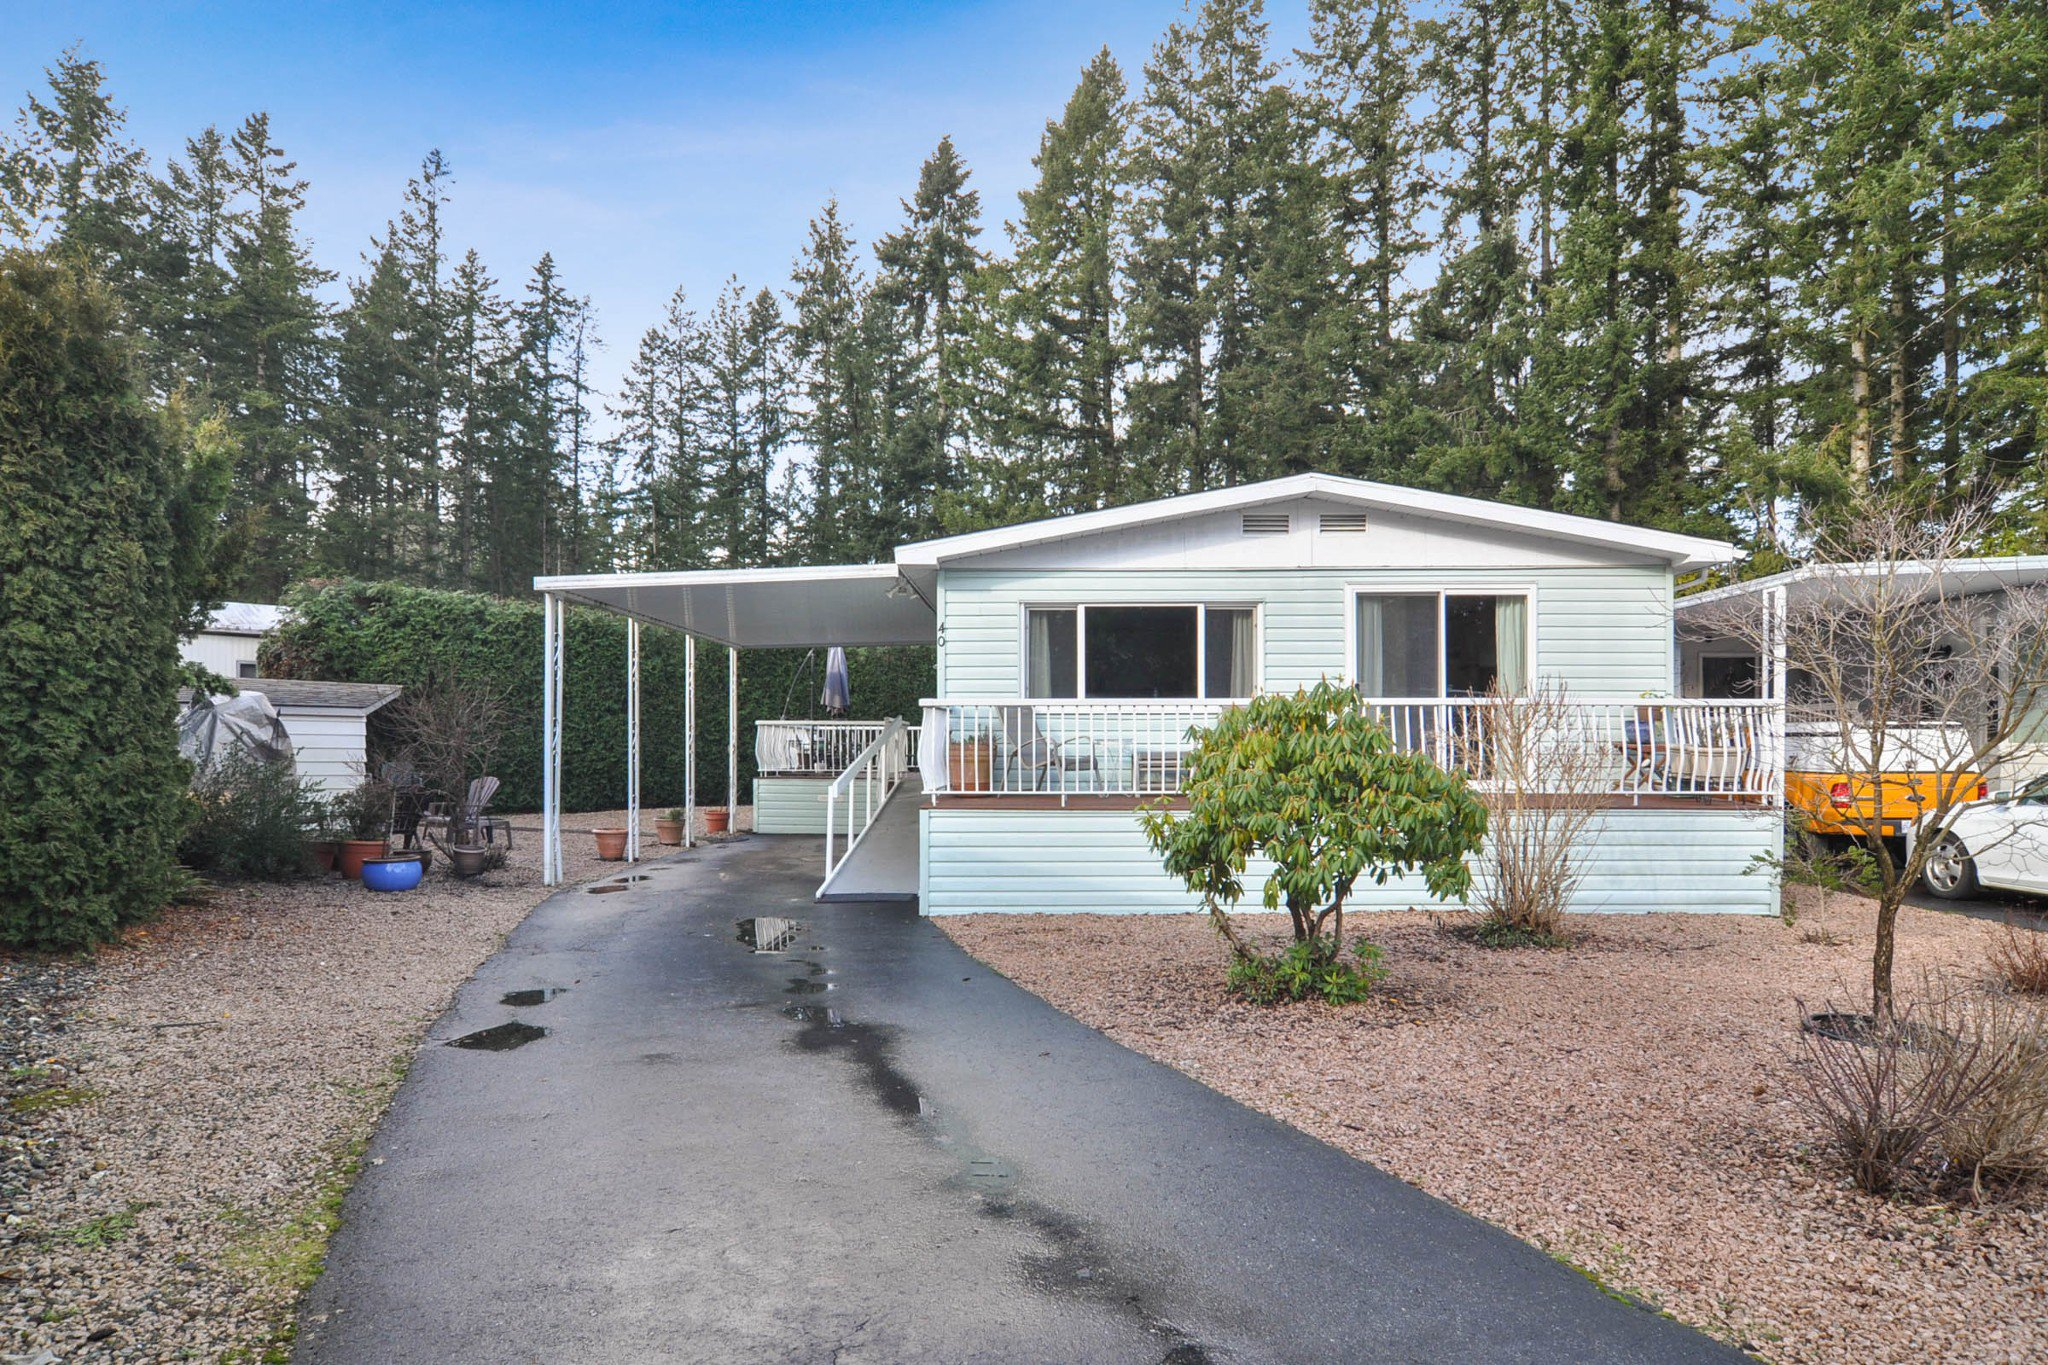 """Main Photo: 40 2305 200 Street in Langley: Brookswood Langley Manufactured Home for sale in """"Cedar Lane Park"""" : MLS®# R2524495"""